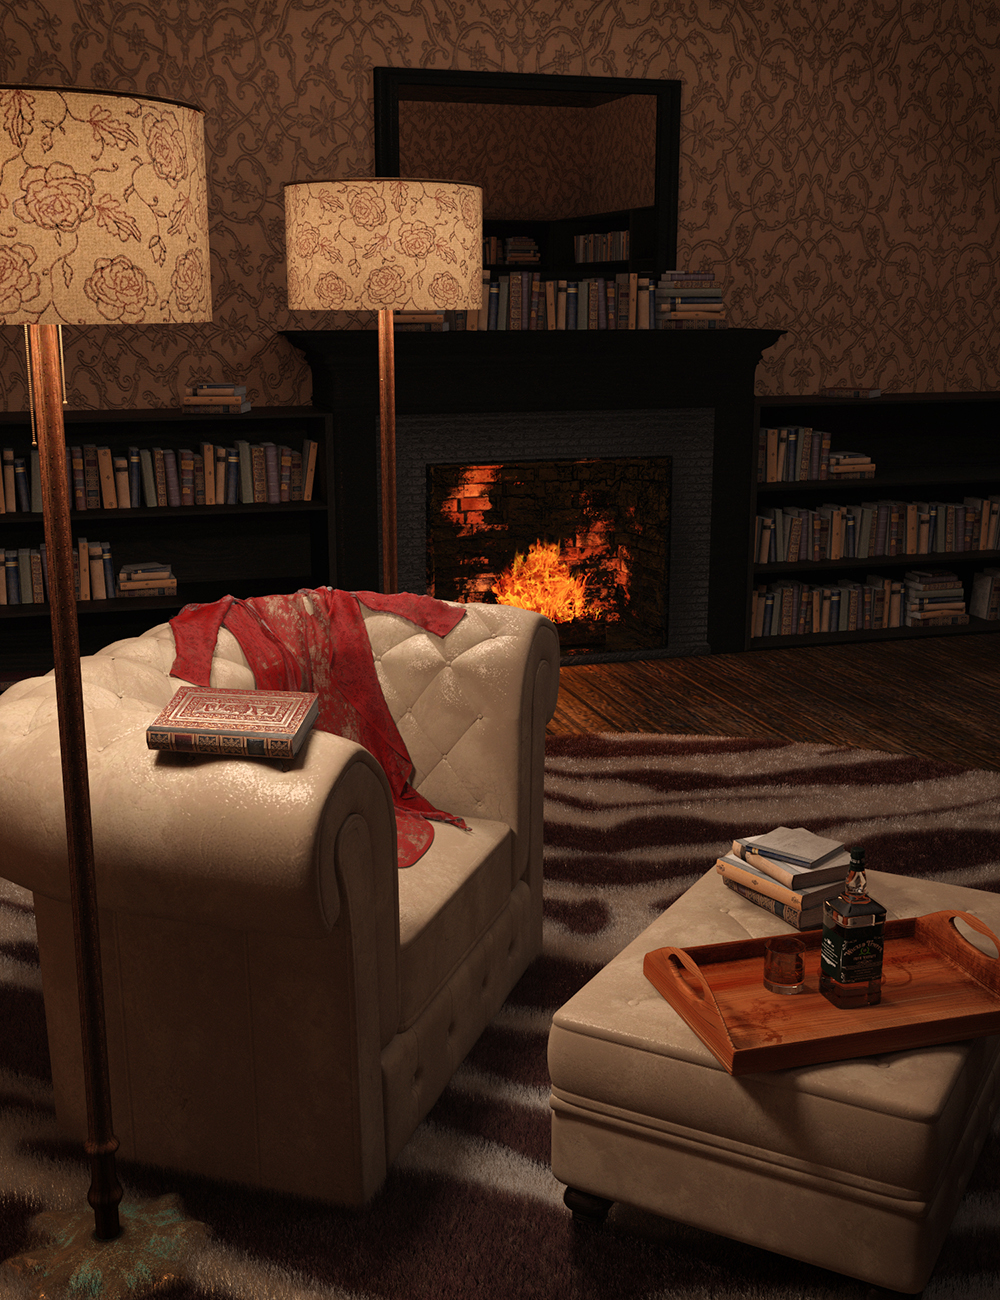 Perfect Pinups: Film Noir Sitting Room by: Skyewolf, 3D Models by Daz 3D